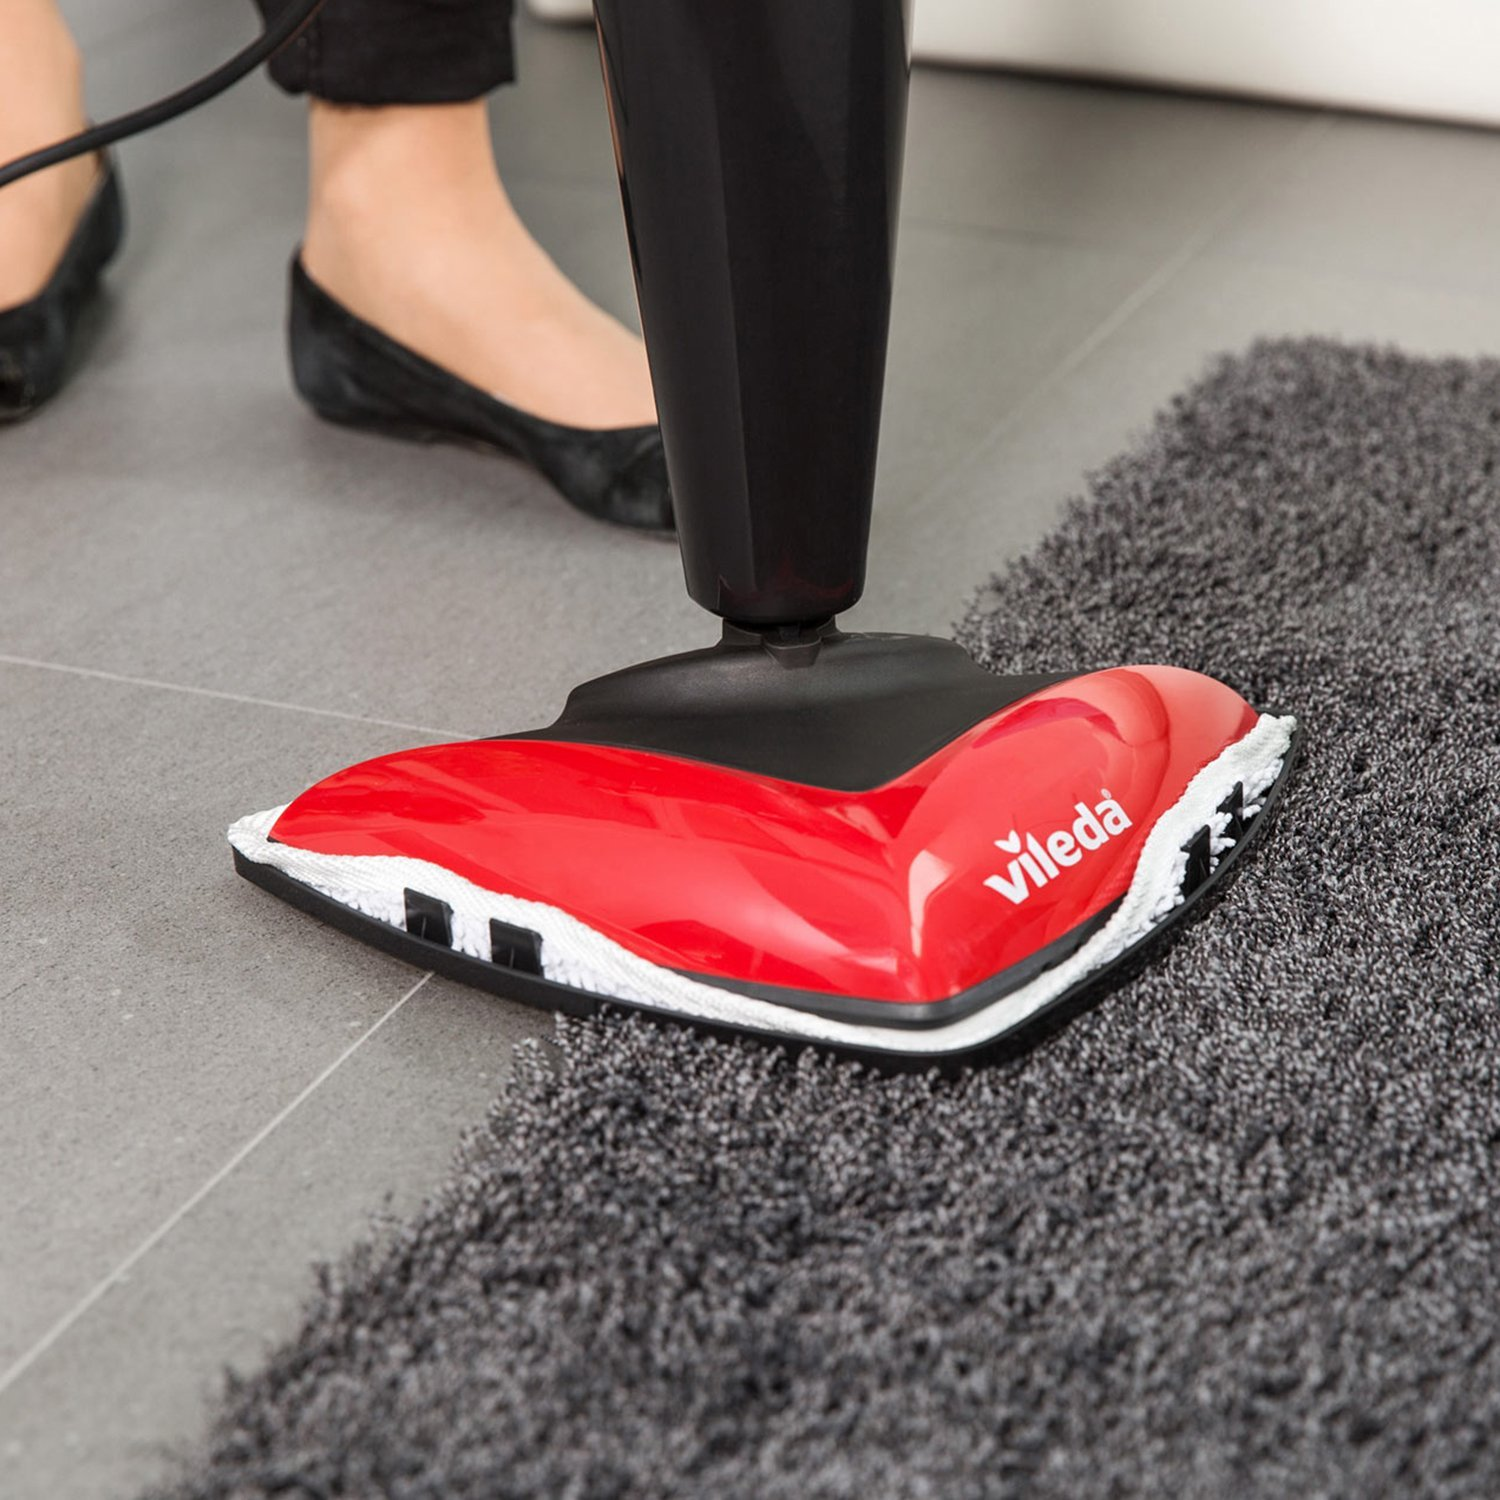 videla steam mop